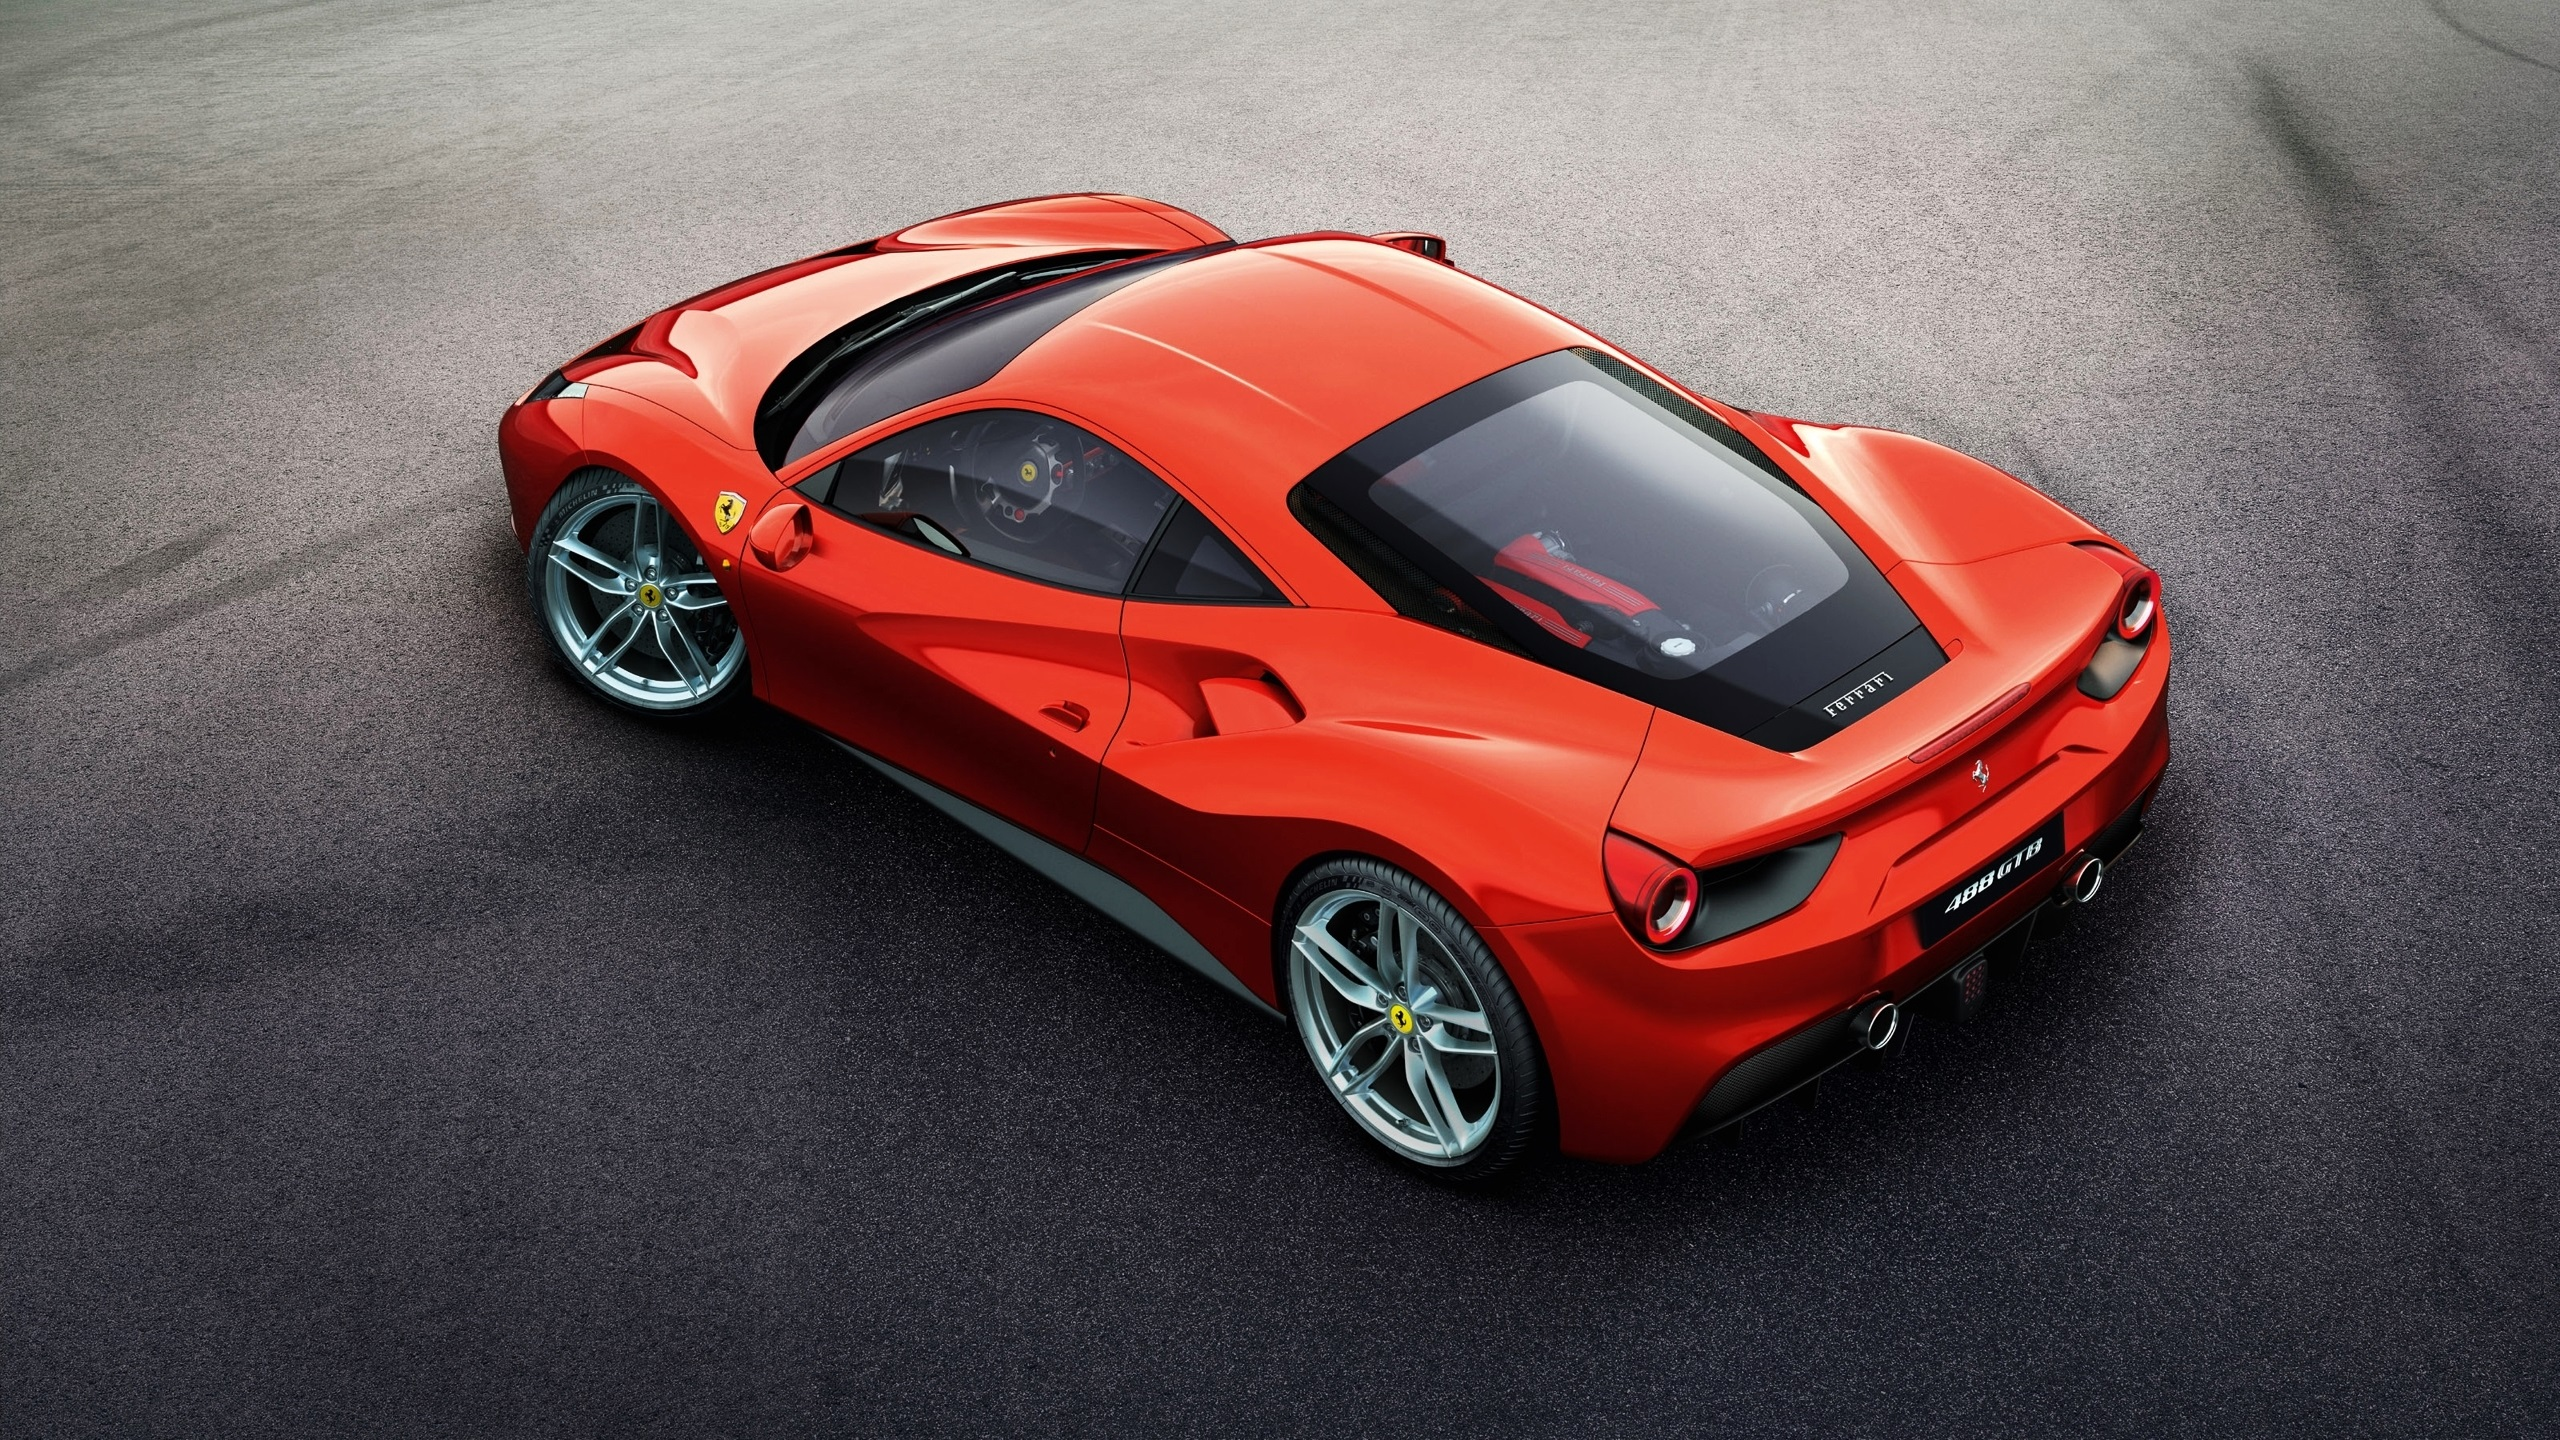 Wallpaper Ferrari 488 Gtb Red Supercar Top View 2560x1440 Qhd Picture Image